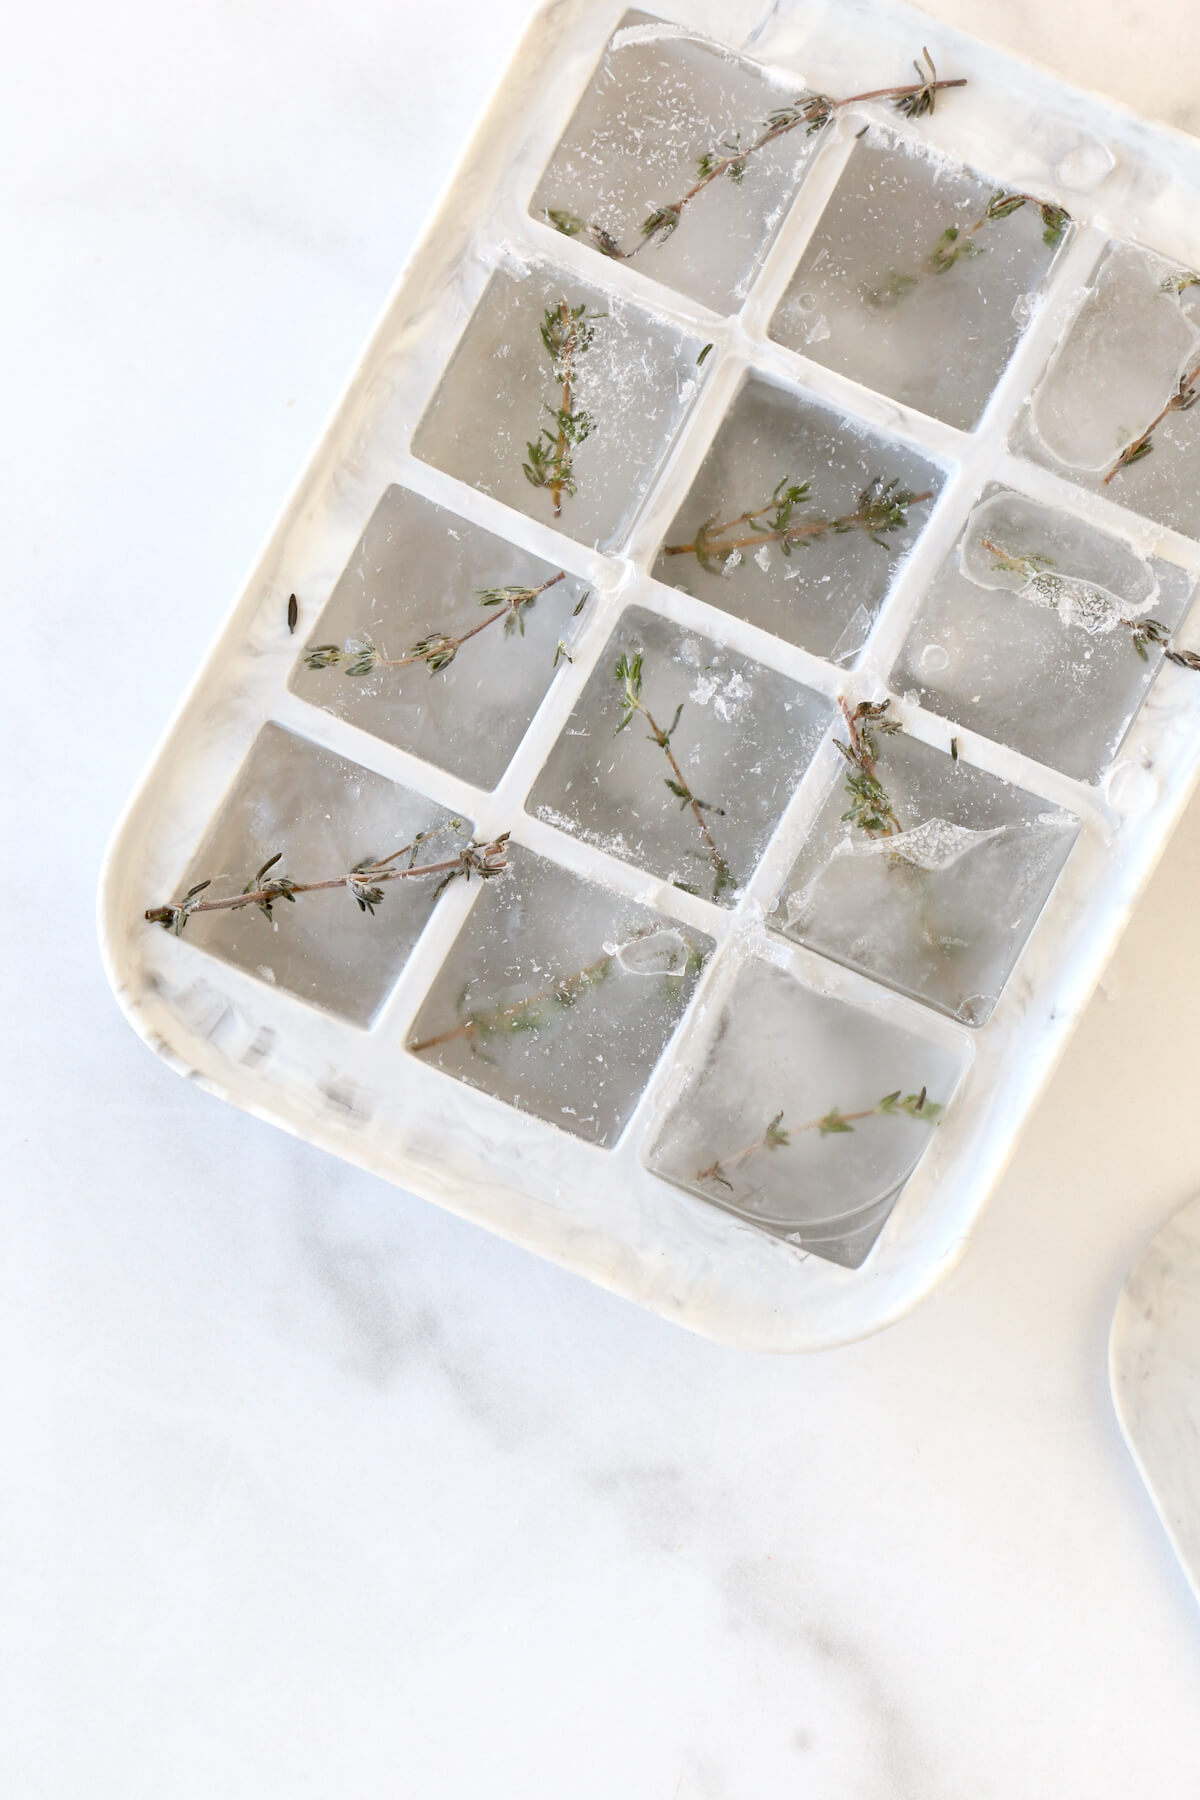 A gray ice cube tray filled with water and fresh thyme leaves.